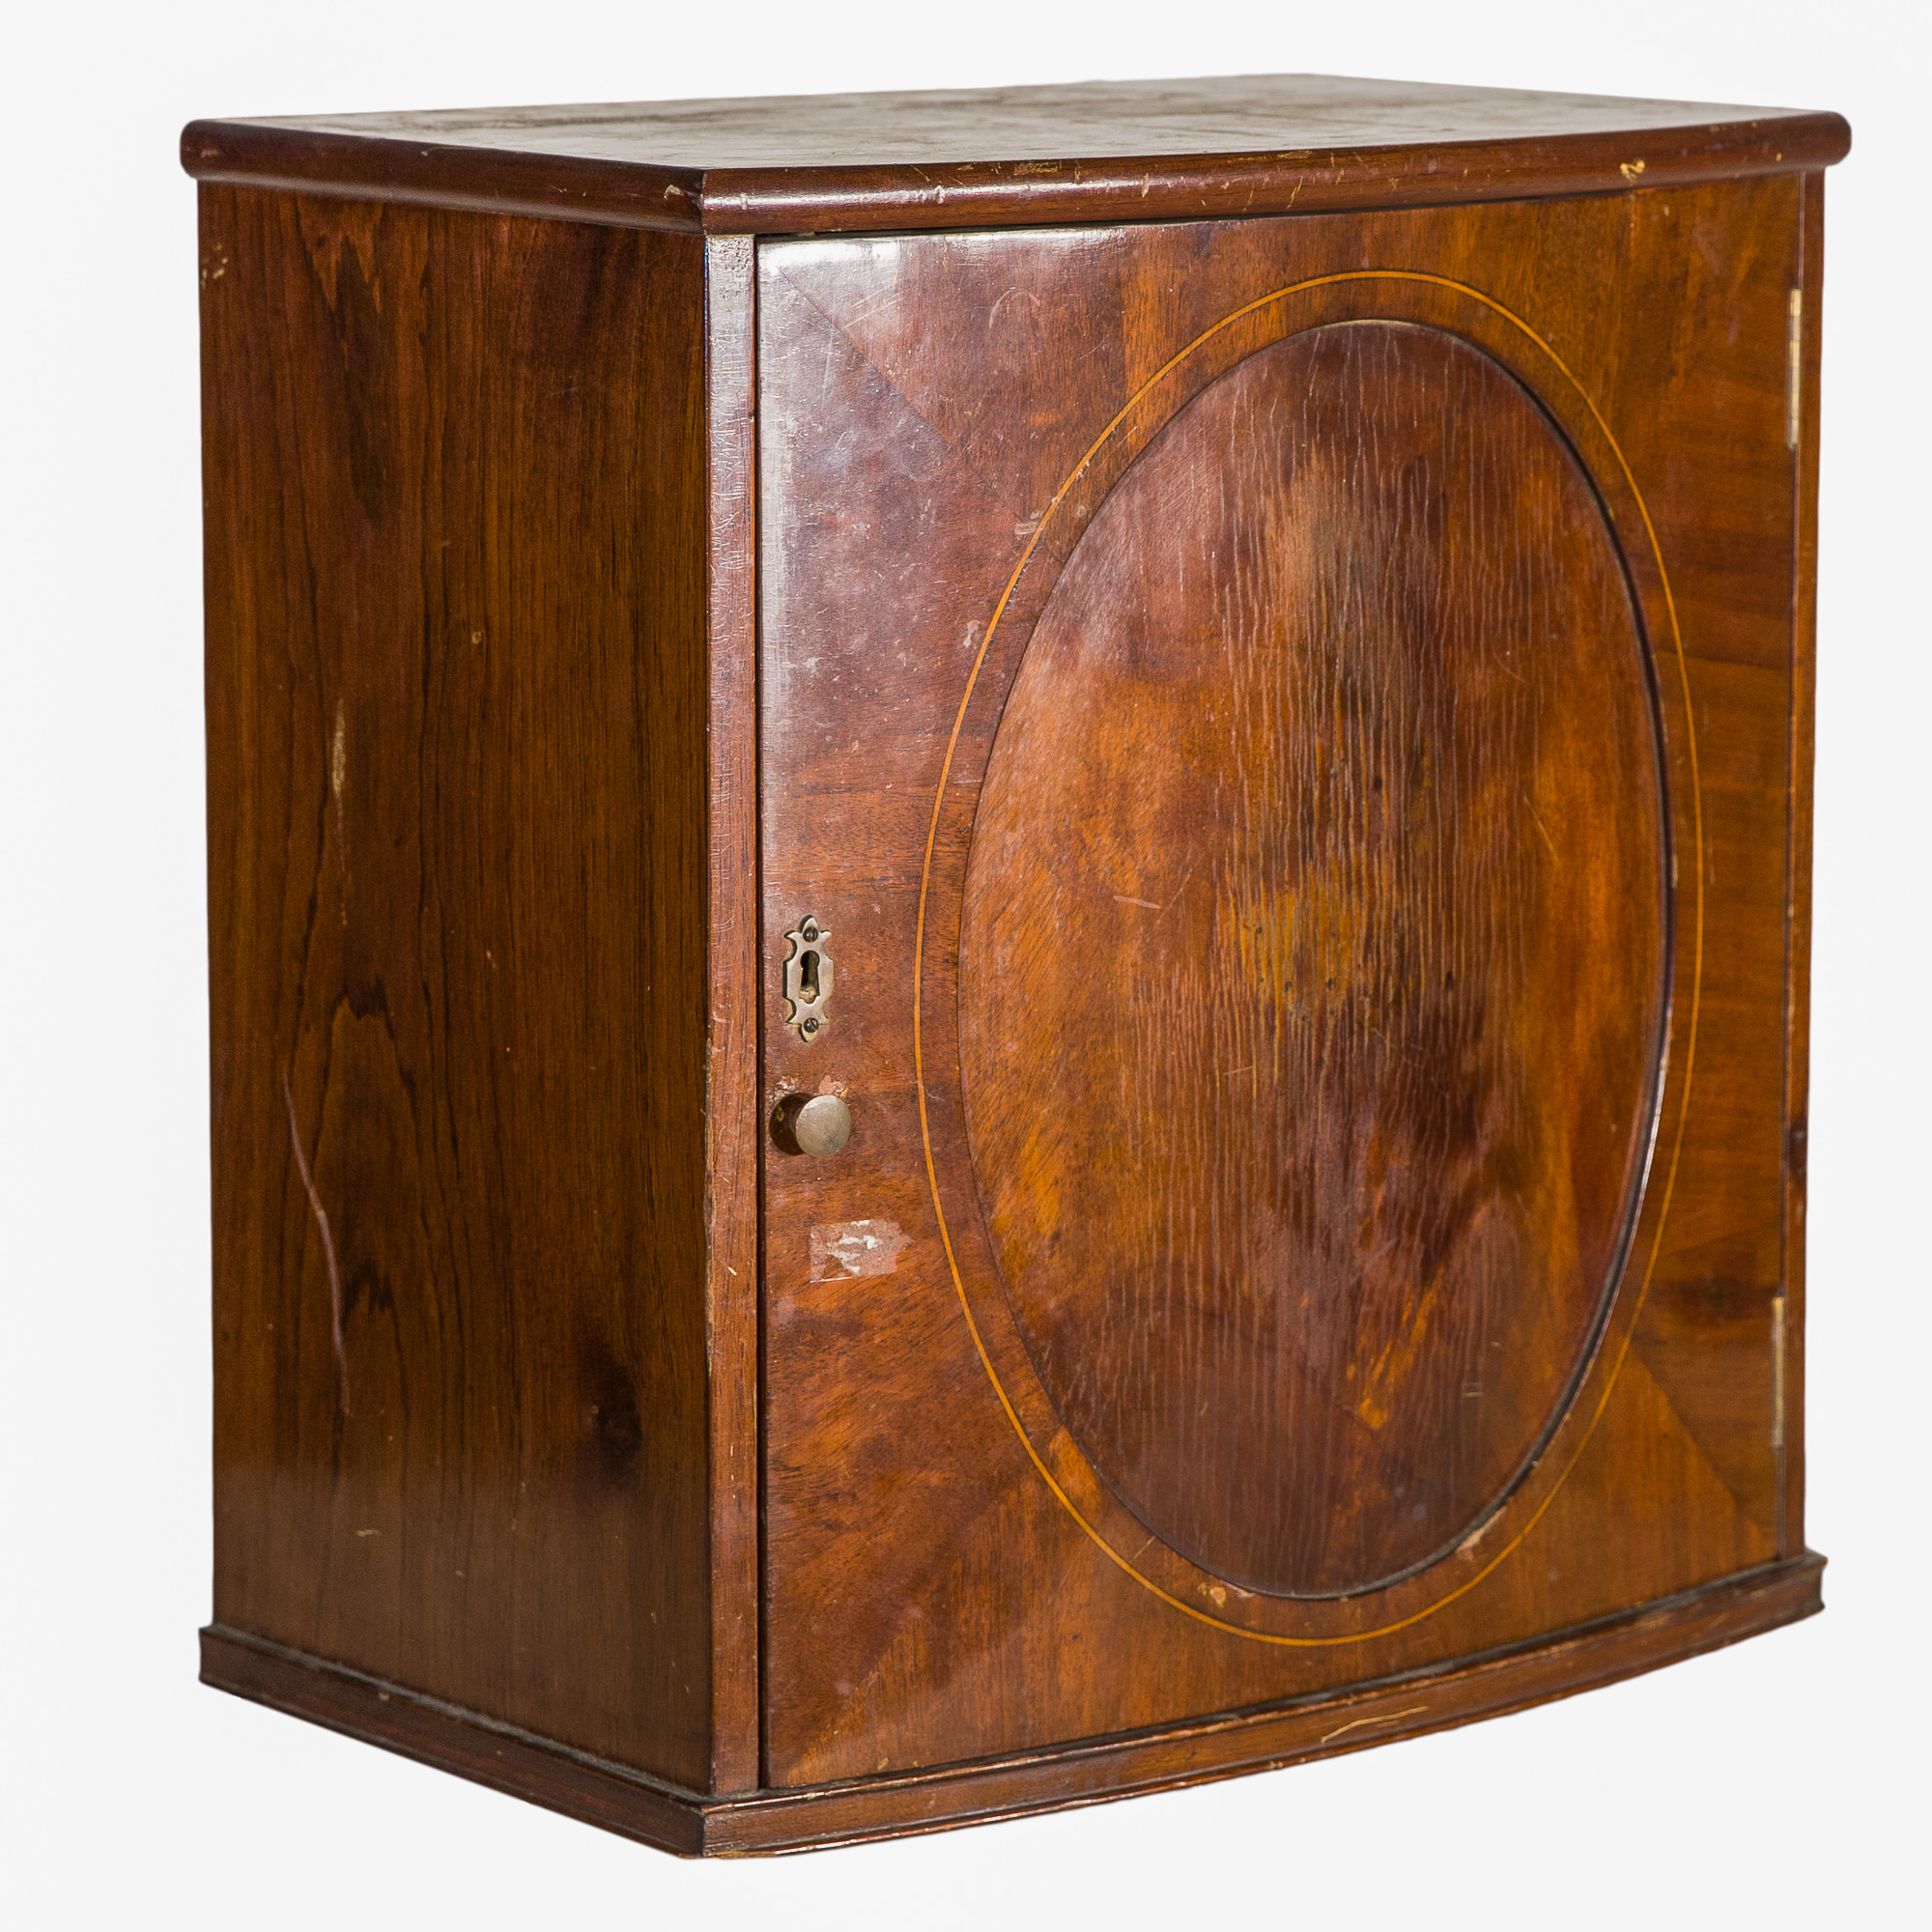 'Regency Style Small Inlaid Mahogany Bowfront Cabinet'